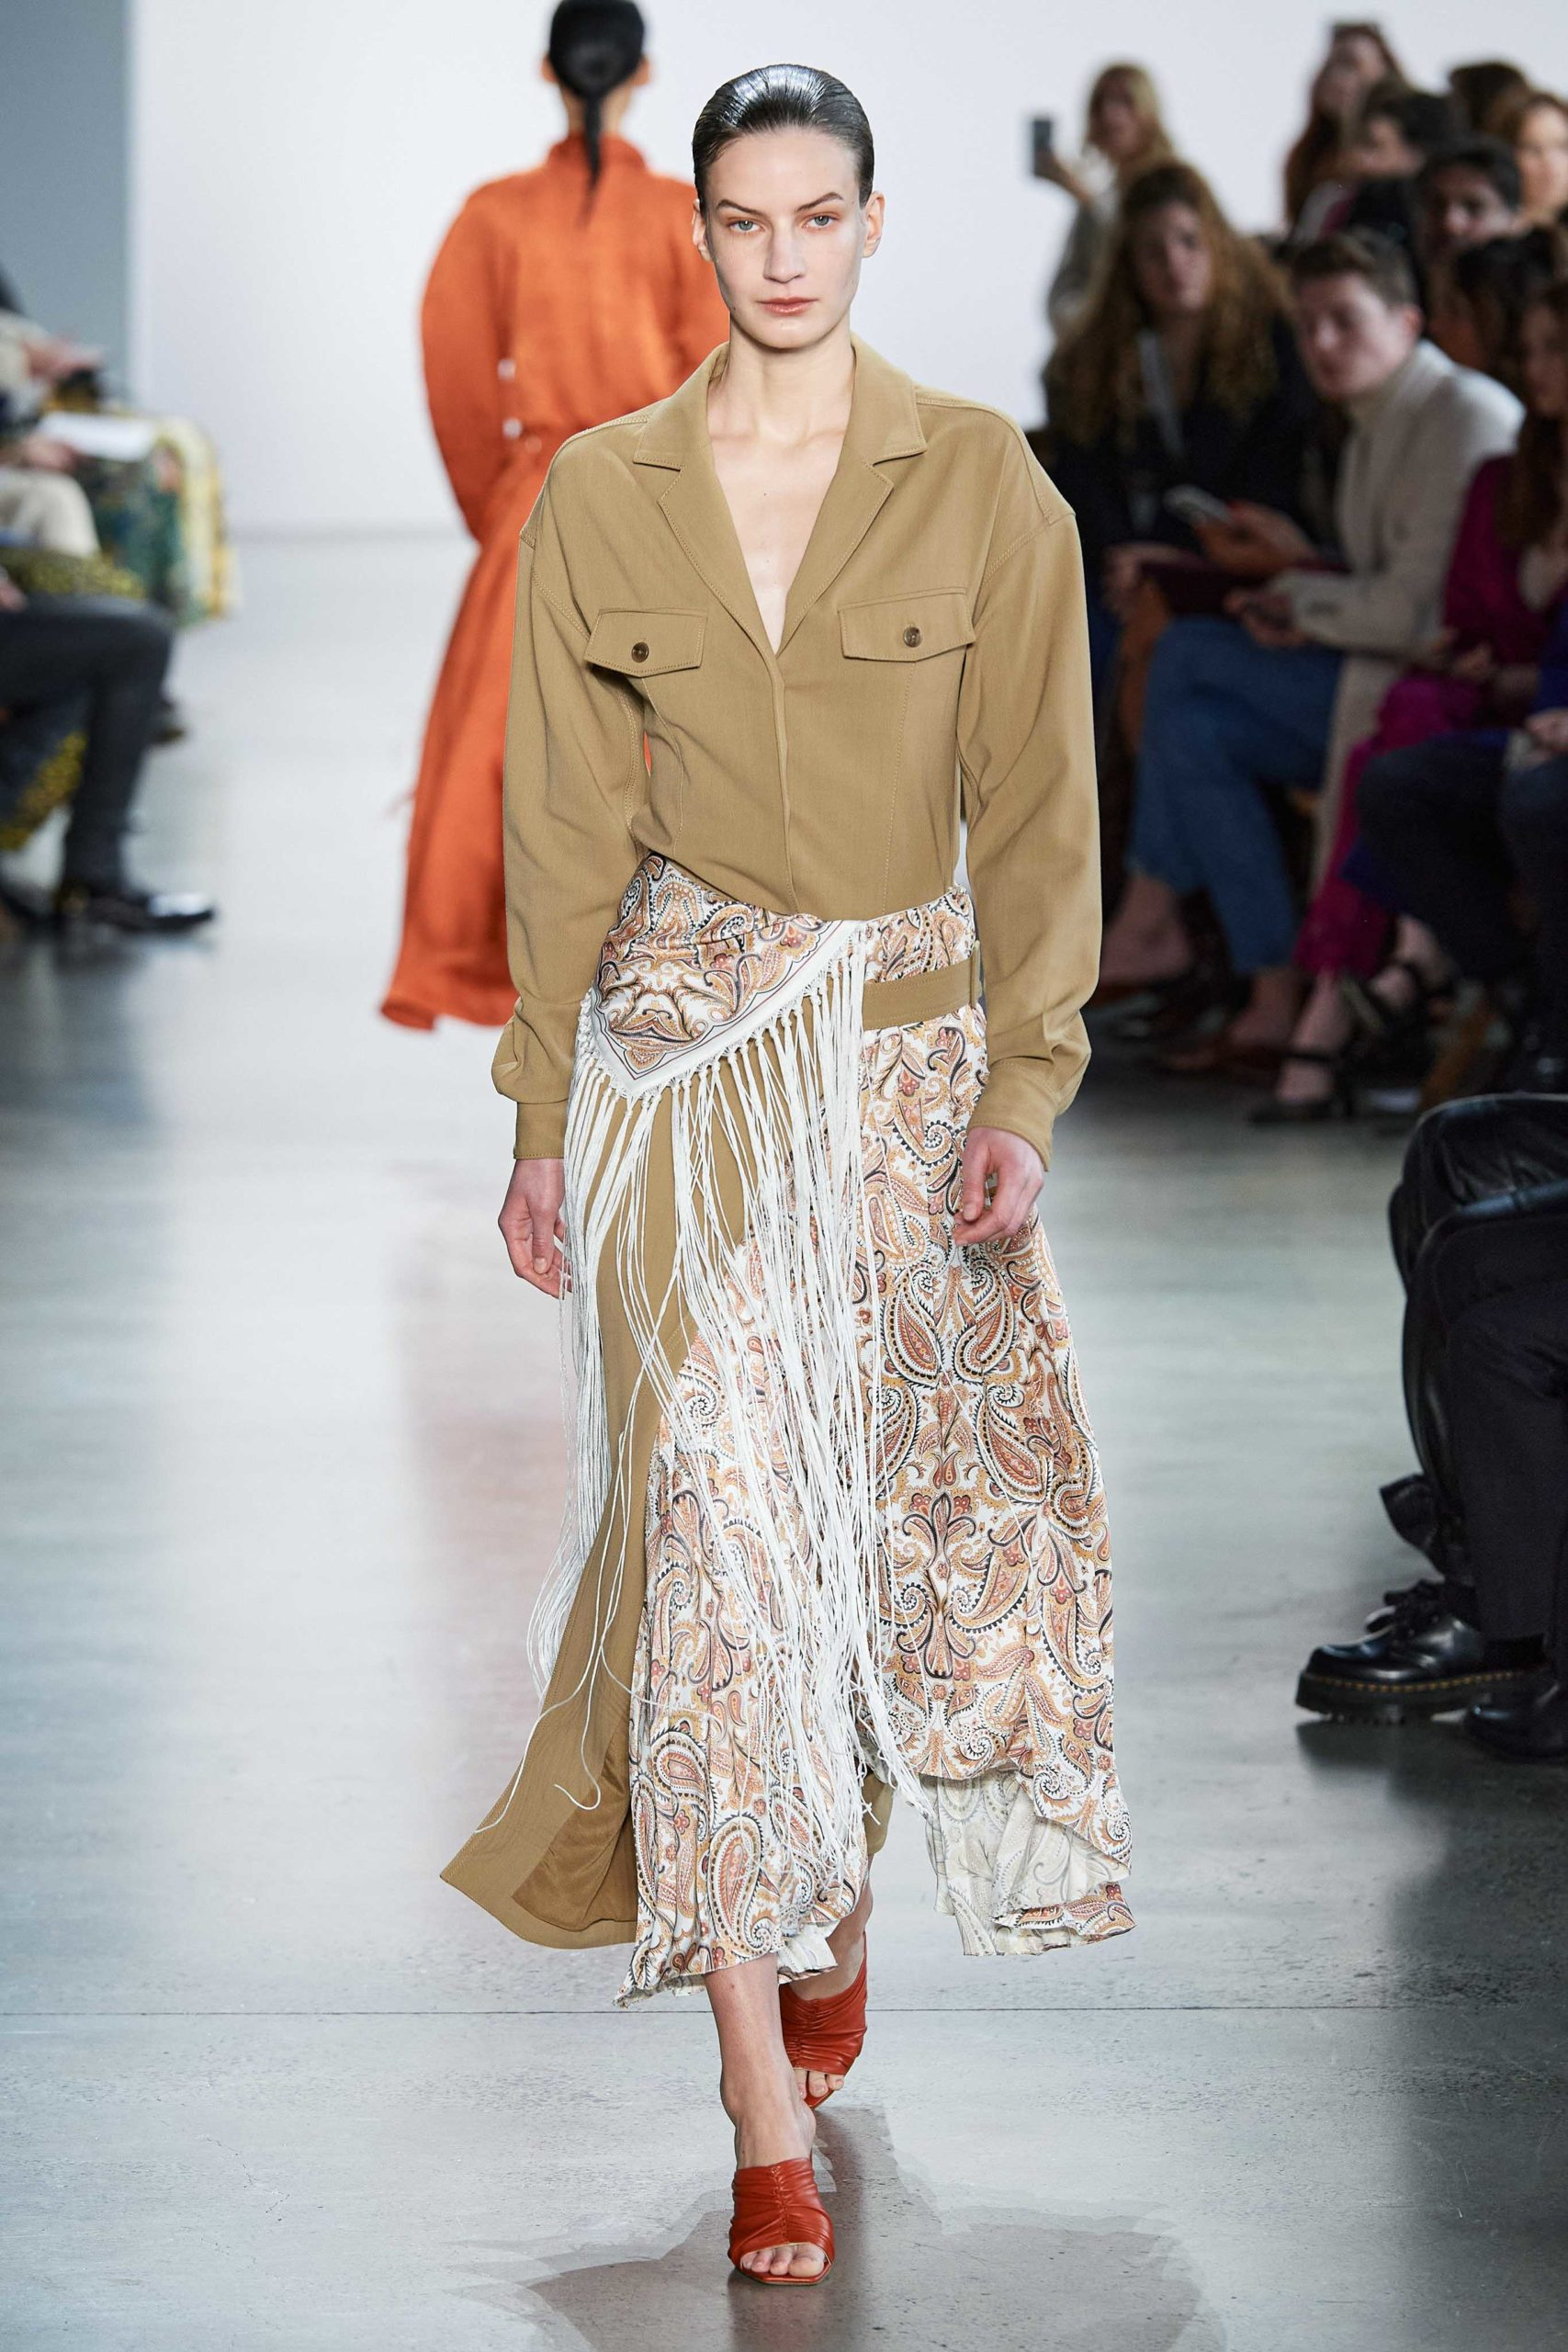 Jonathan Simkhai Fall 2020 trends runway coverage Ready To Wear fringe and print